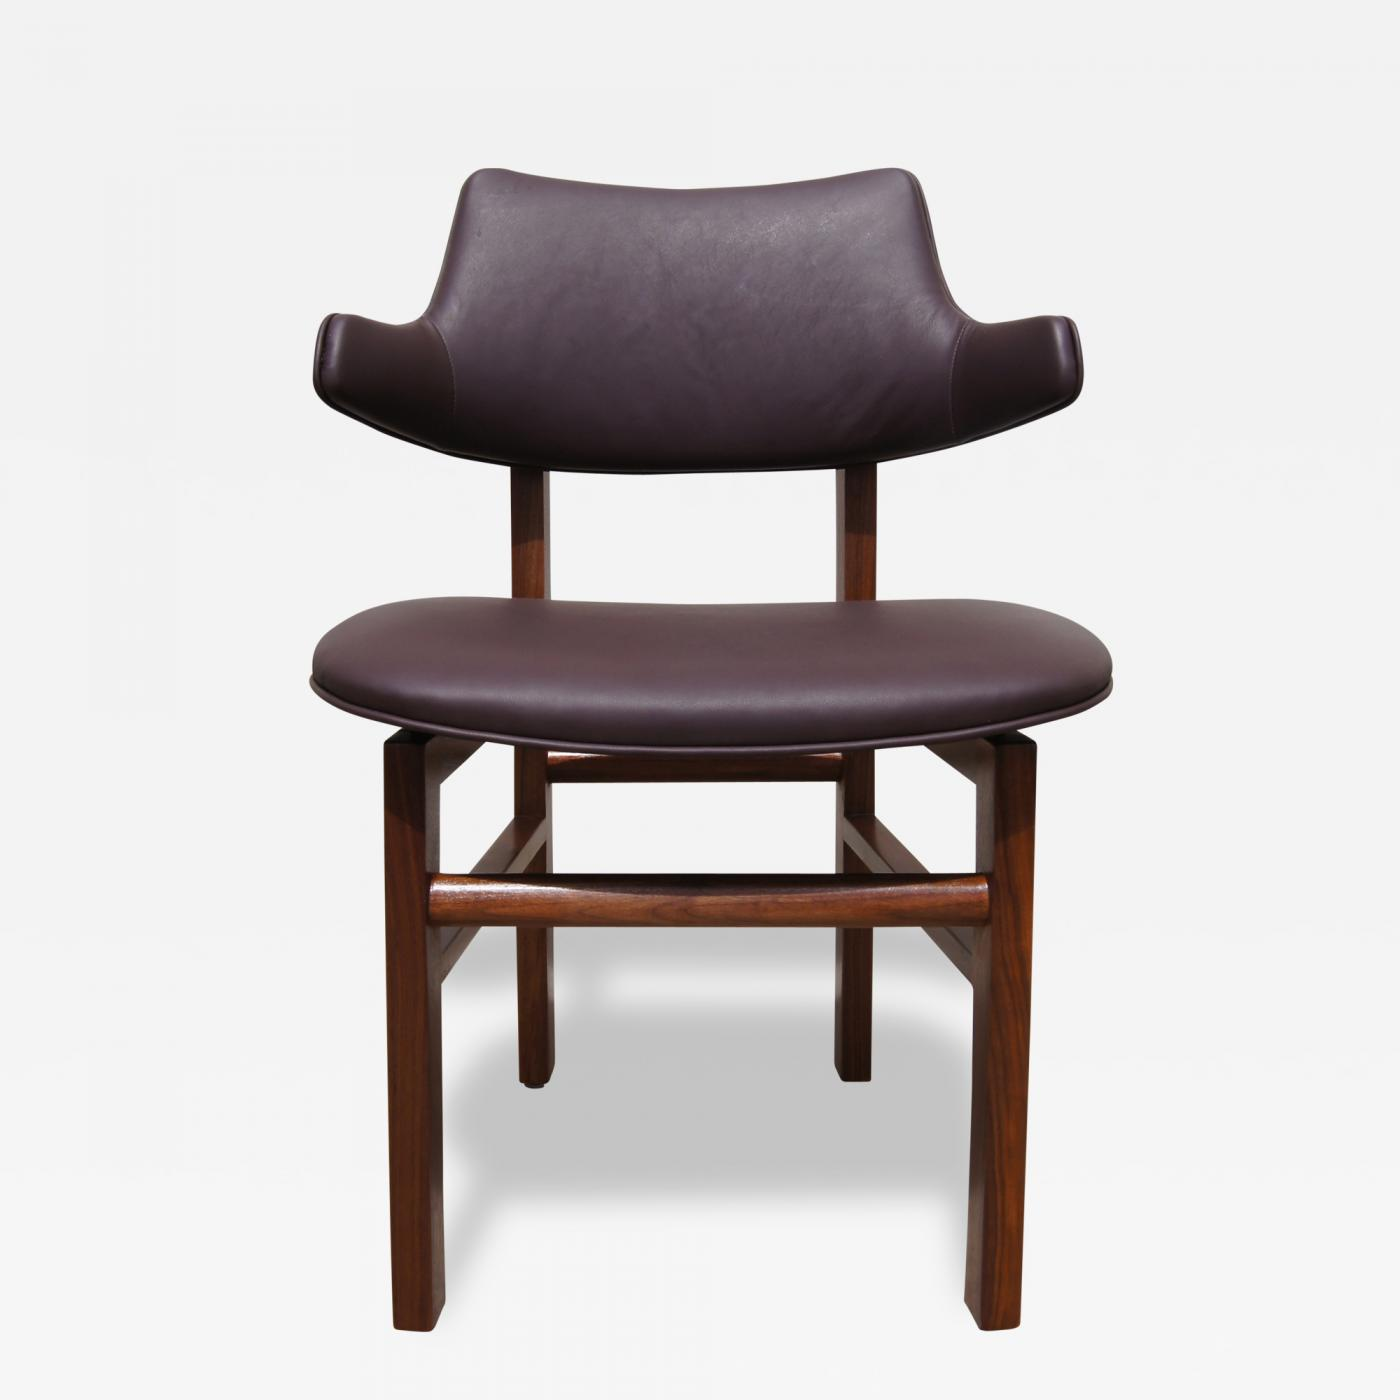 Edward wormley set of six leather and walnut dining chairs by edward wormley for dunbar - Edward wormley chairs ...